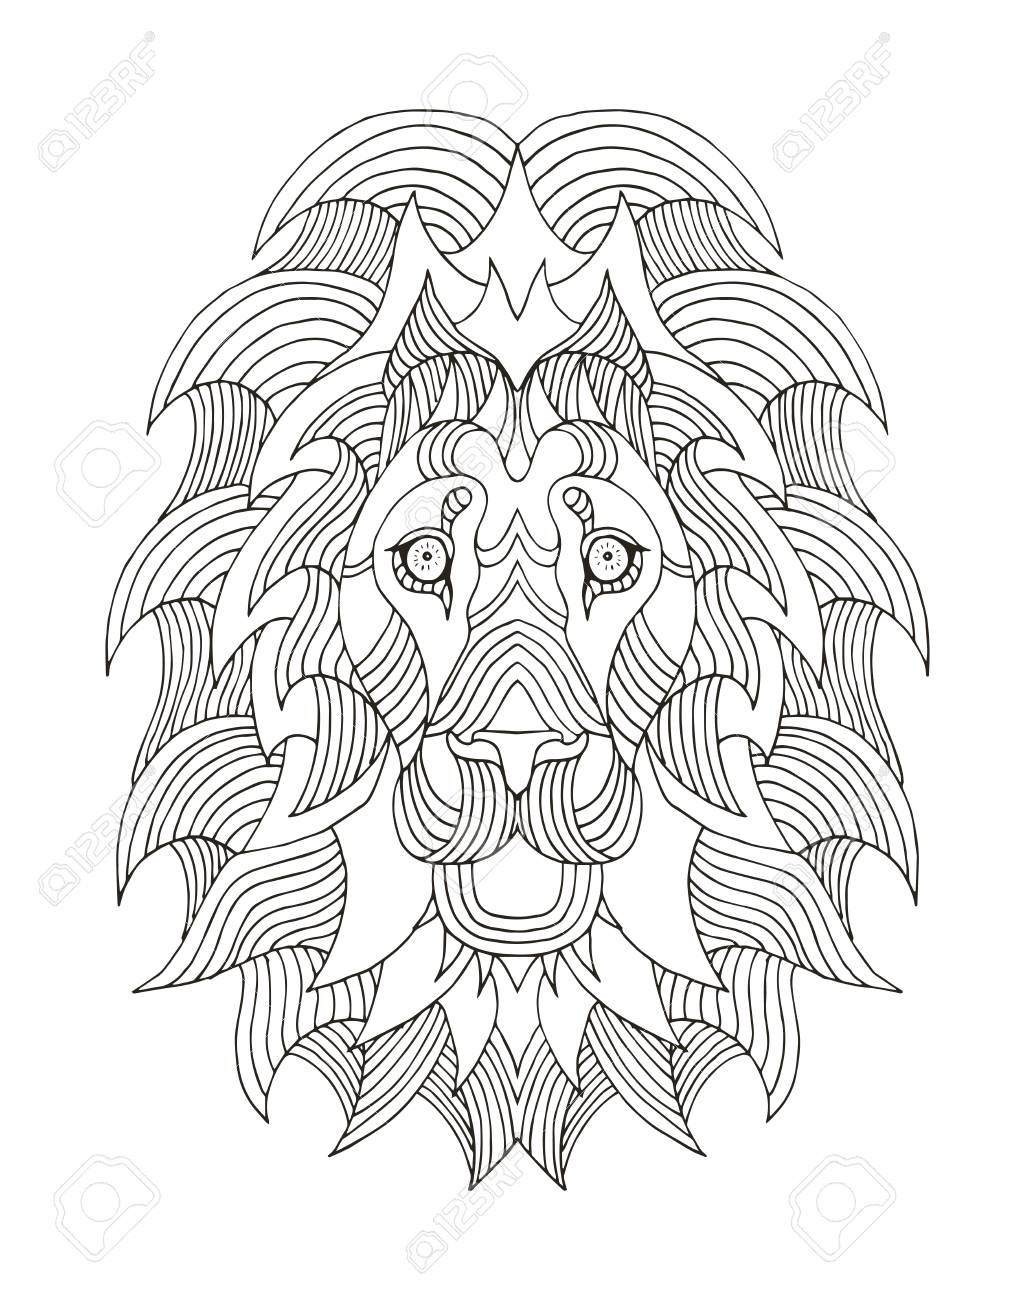 1035x1300 Lion Head Zentangle Stylized, Vector, Illustration, Freehand